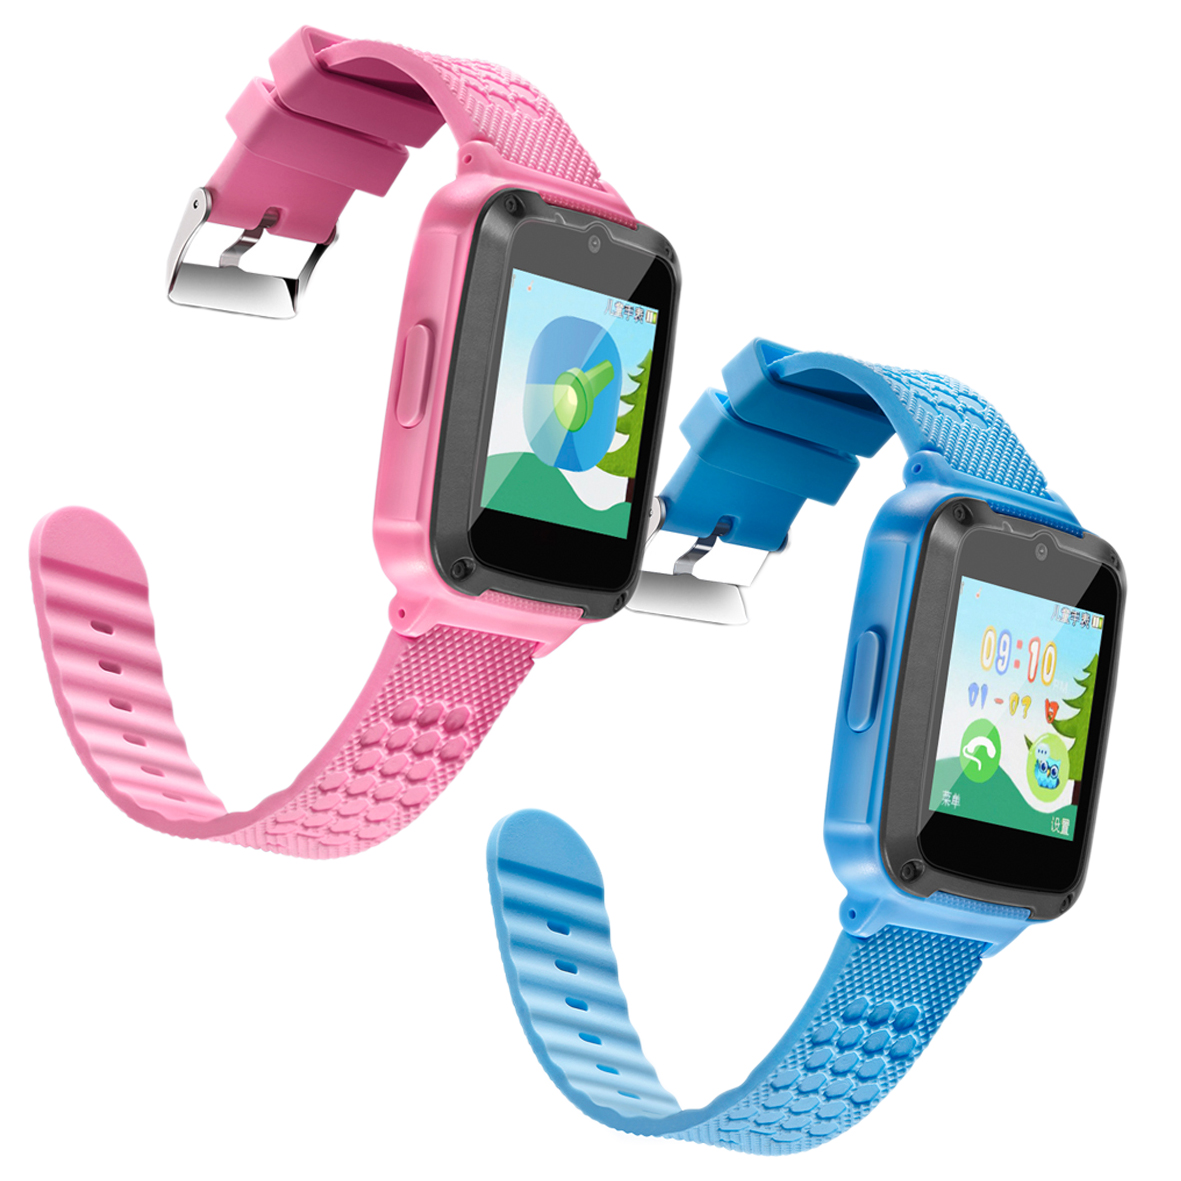 color screen SOS Anti-lost with camera Smart Watch phone for kids